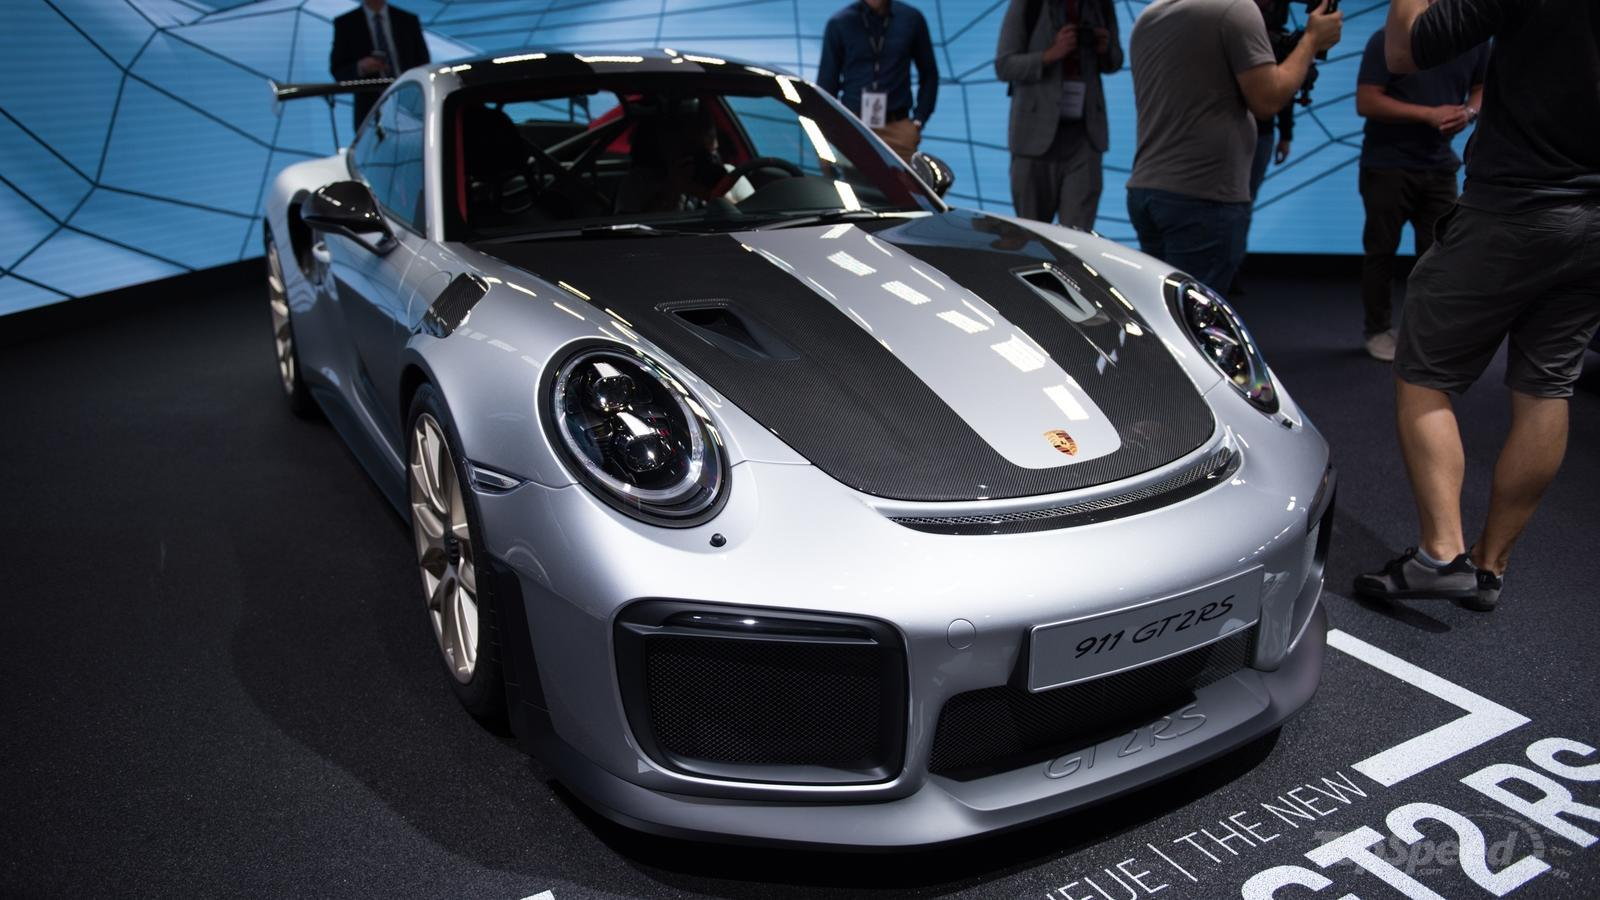 2018 porsche 911 gt2 rs review top speed. Black Bedroom Furniture Sets. Home Design Ideas